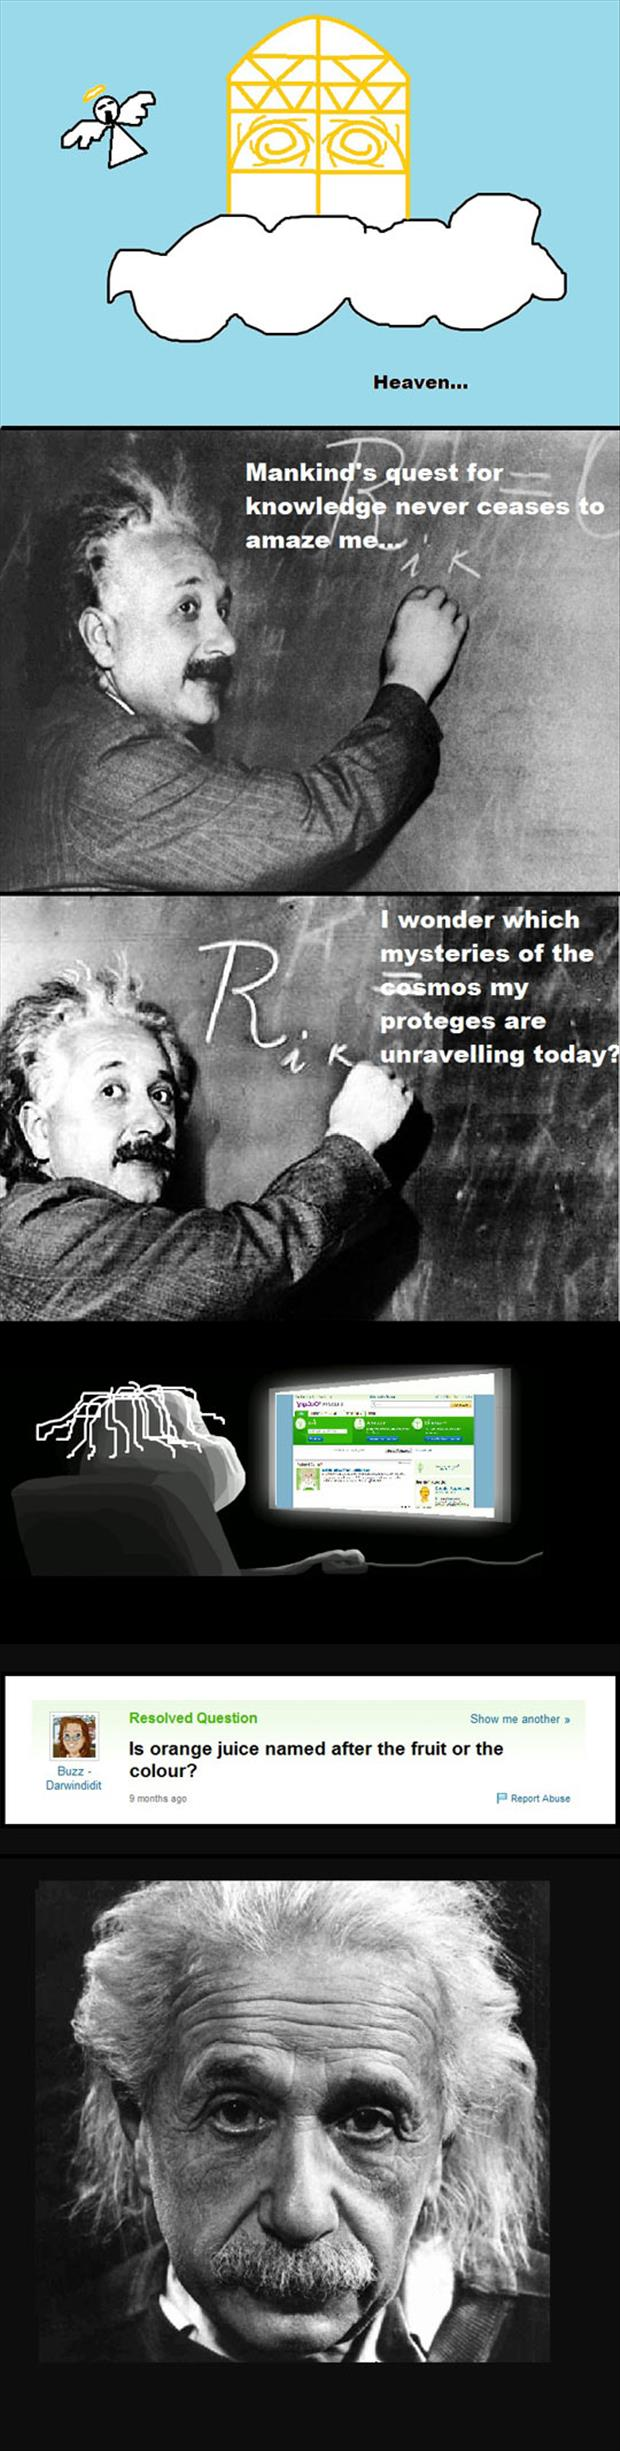 I Wonder Which Mysteries Of The Cosmos My Proteges Are Unravelling Today ?